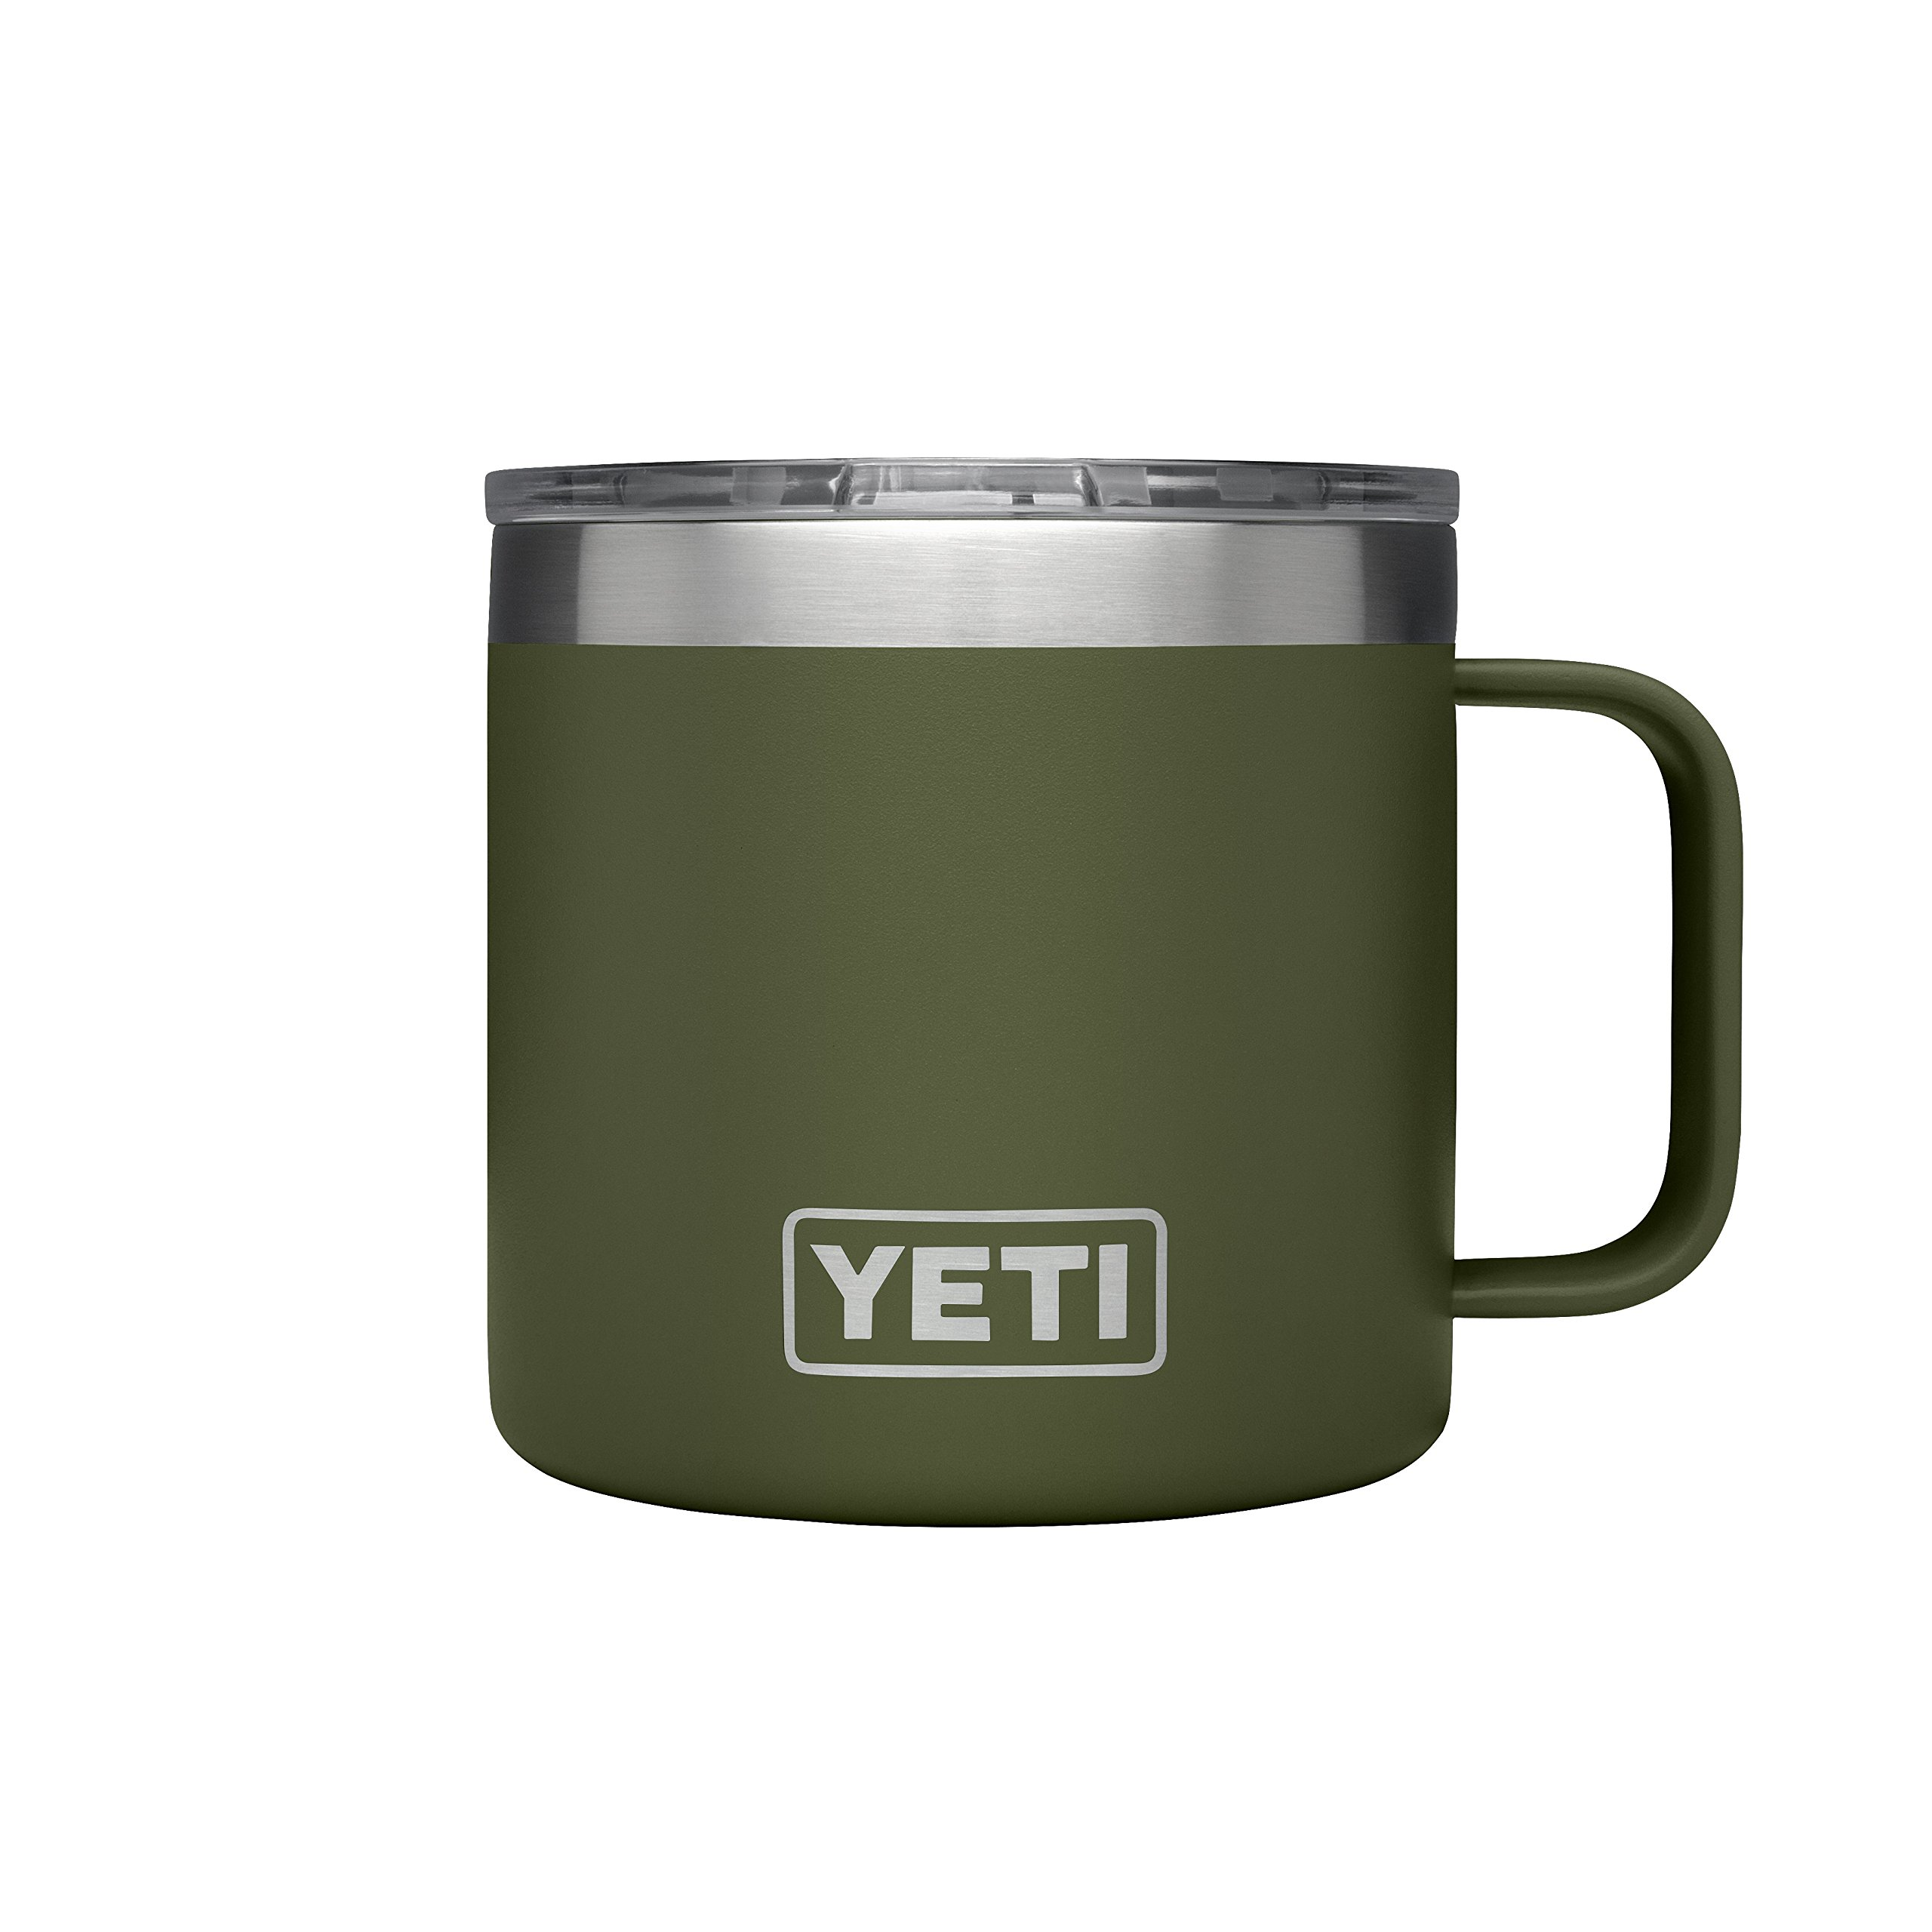 12176b7d3a9 YETI Rambler 14 oz Stainless Steel Vacuum Insulated Mug with Lid, Olive  Green by YETI